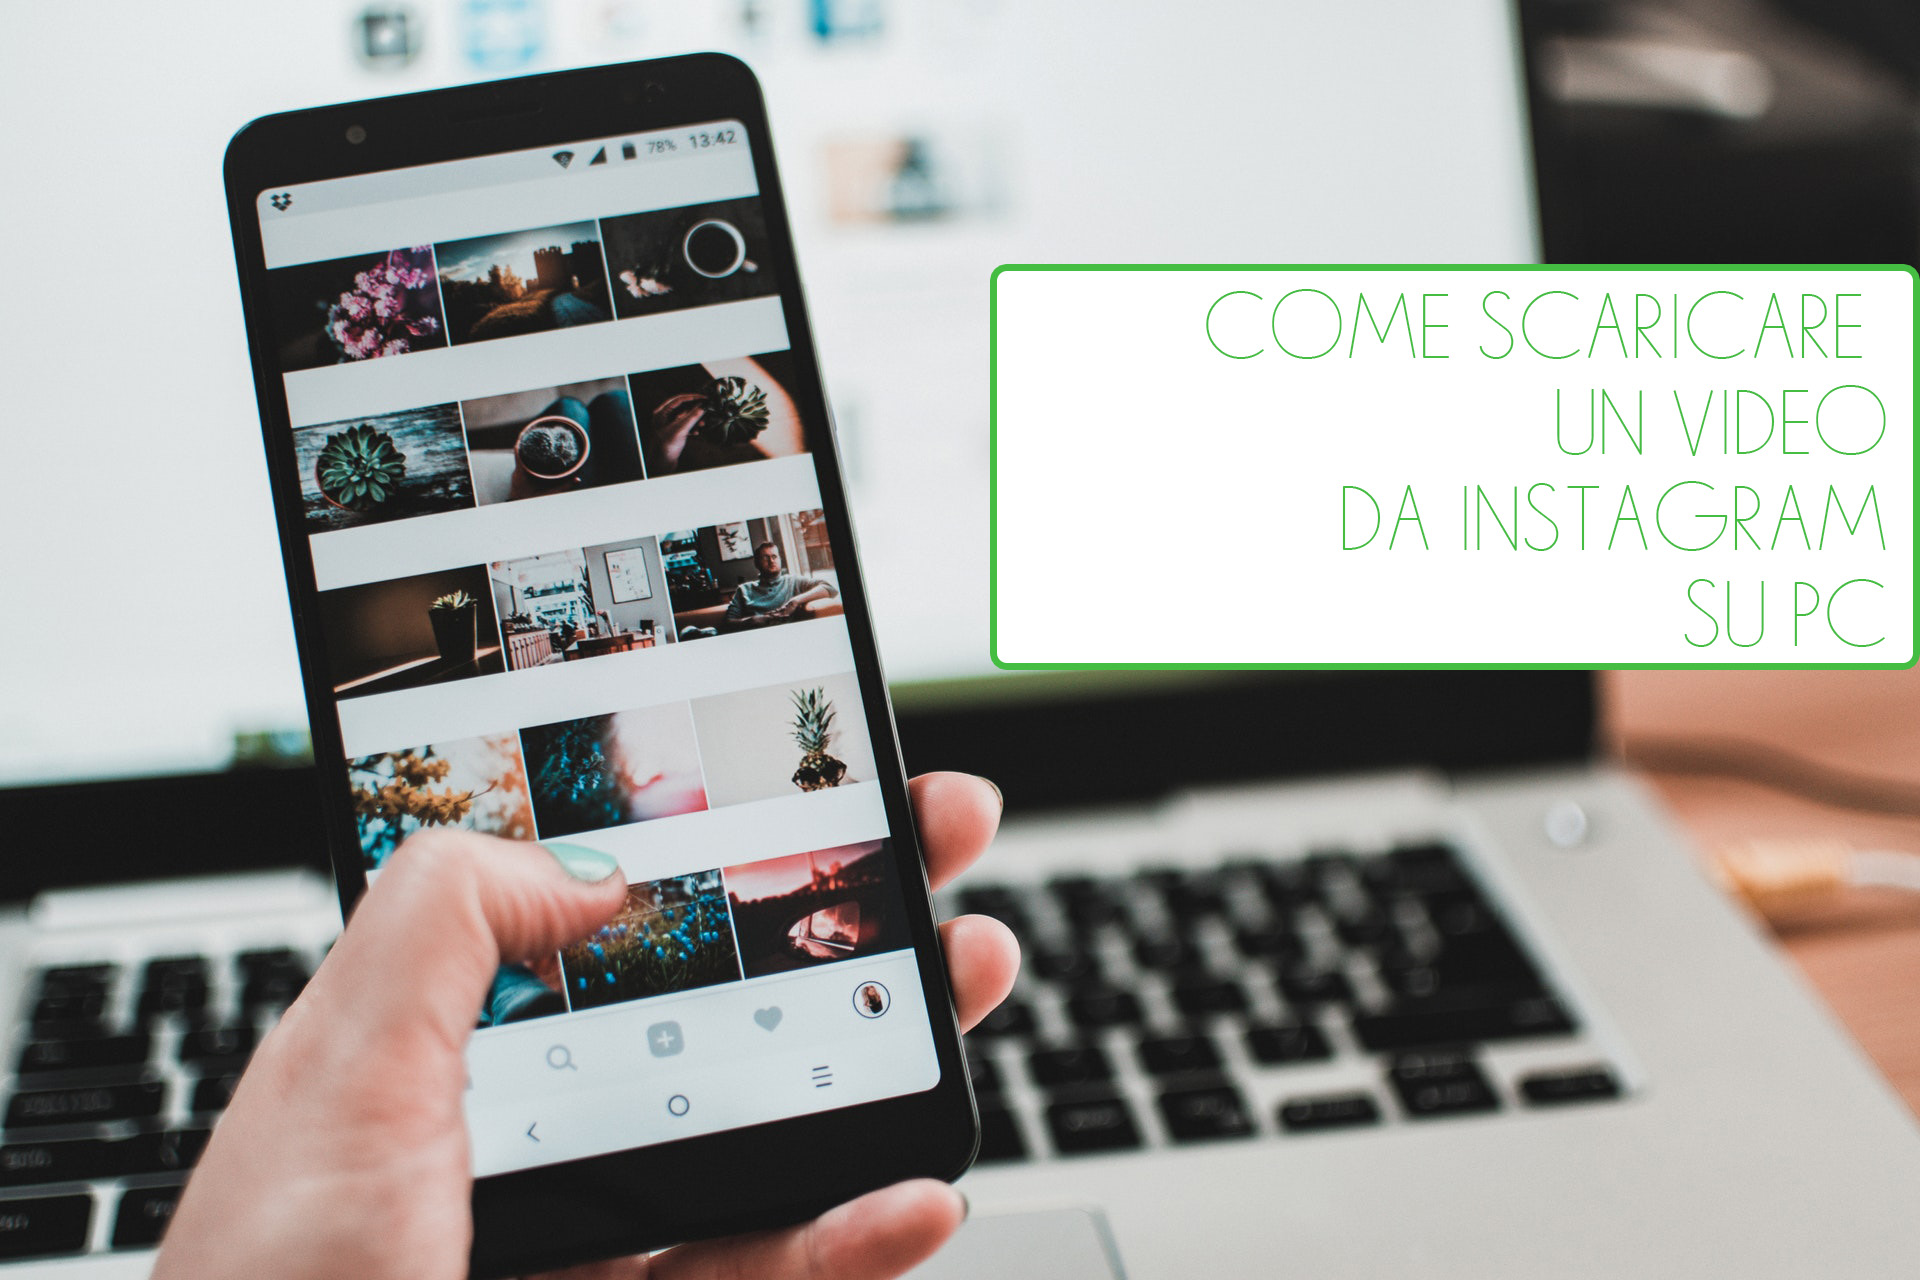 Come scaricare un video da Instagram su PC